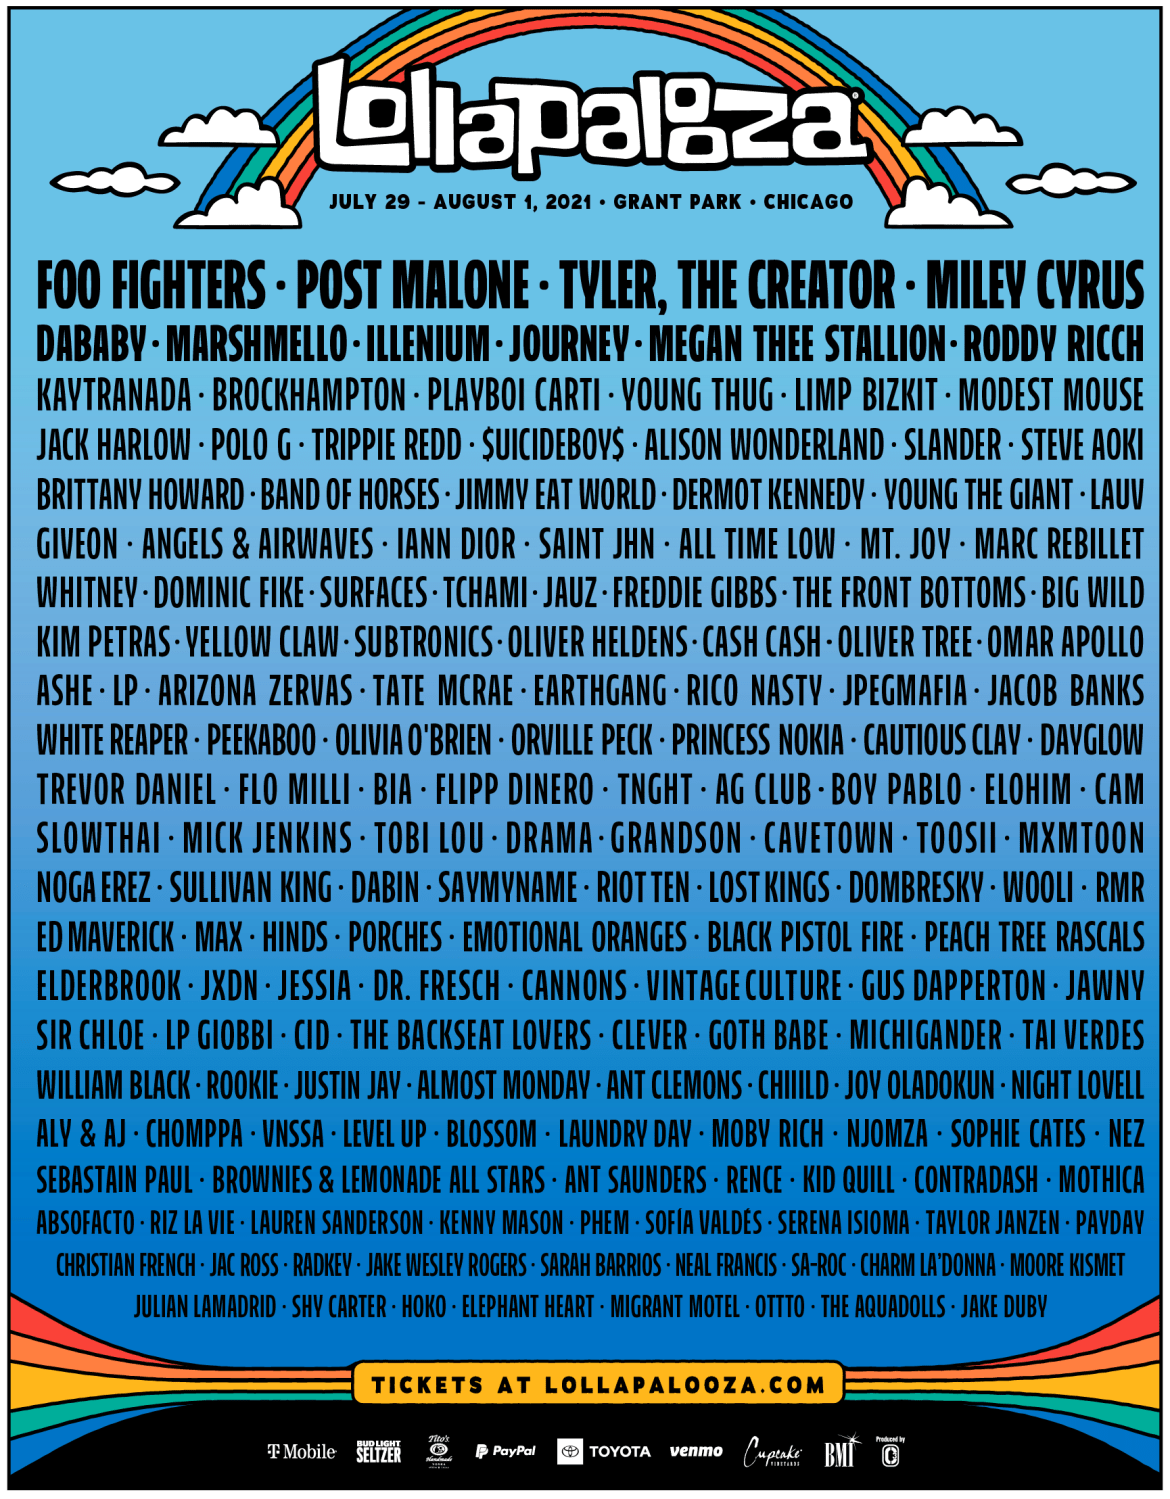 Lollapalooza set to return to Chicago this Summer